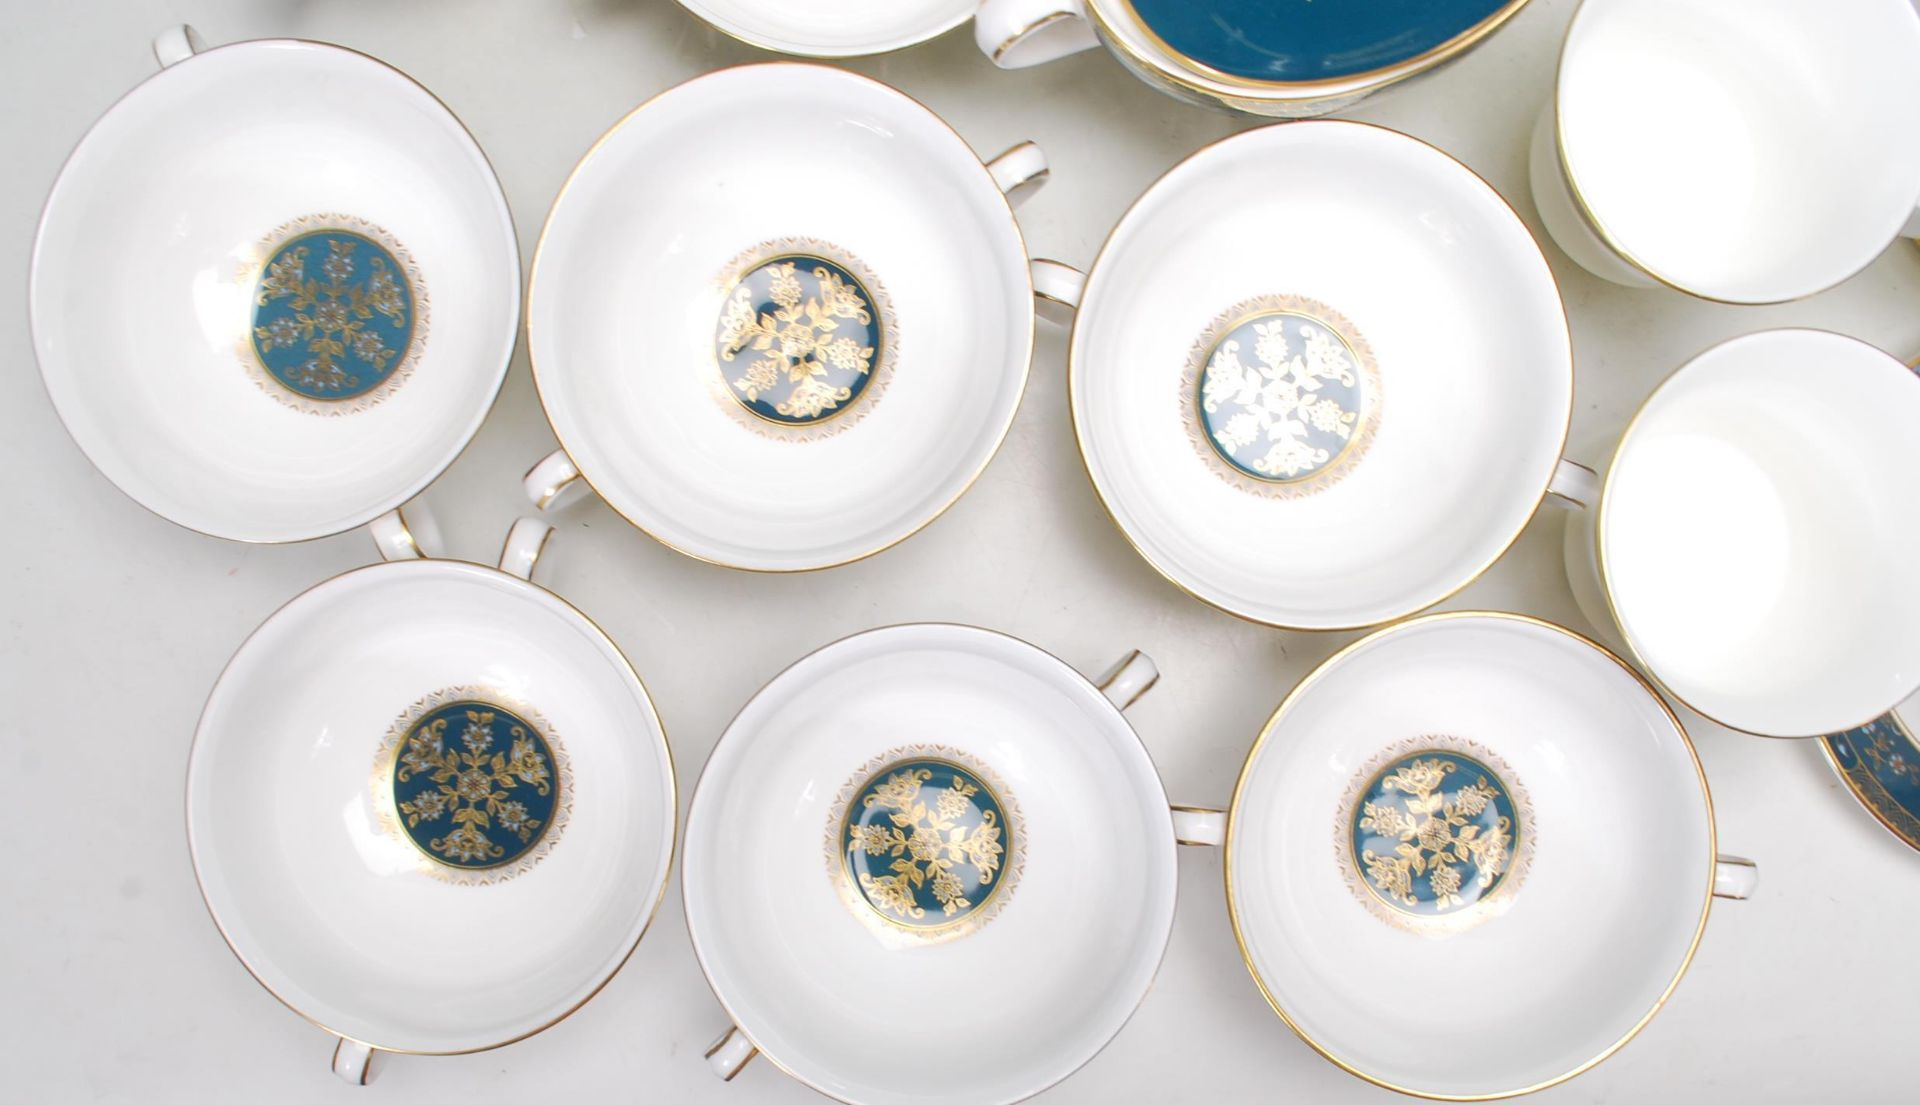 COLLECTION OF LATE 20TH CENTORUY ROYAL DOULTON FINE BONE CHINA DINNER SERVICE - Image 3 of 8